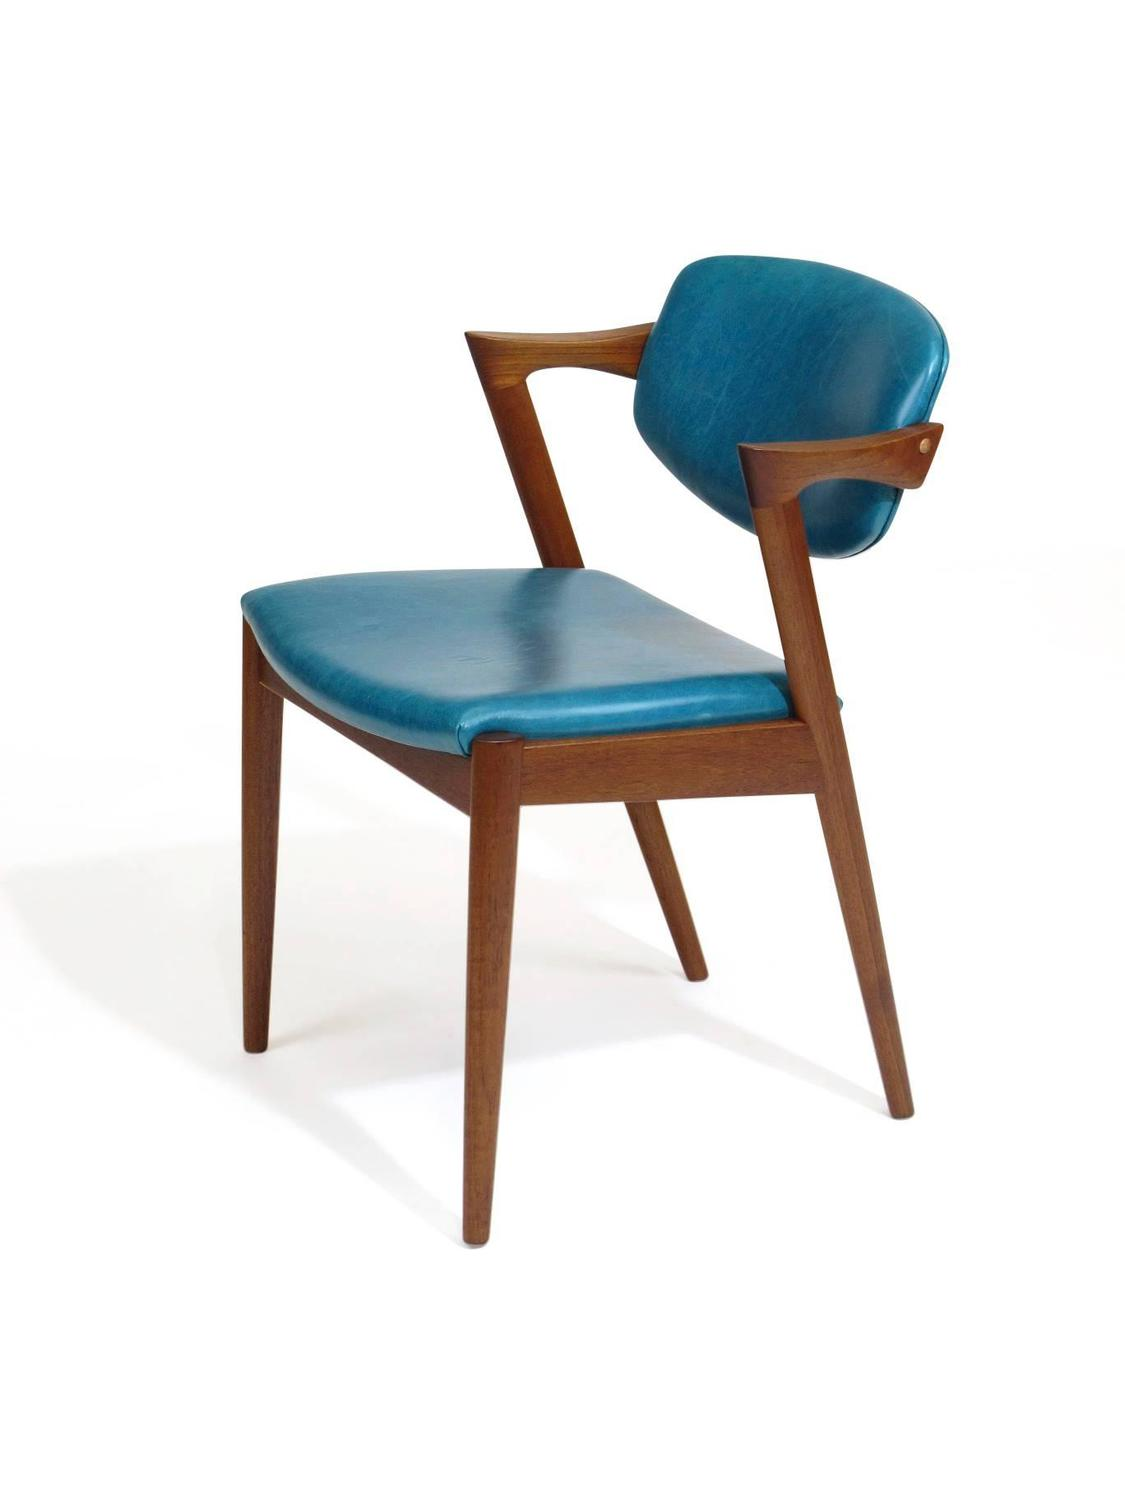 Aqua Dining Chairs Six Kai Kristiansen Teak Danish Dining Chairs In Turquoise